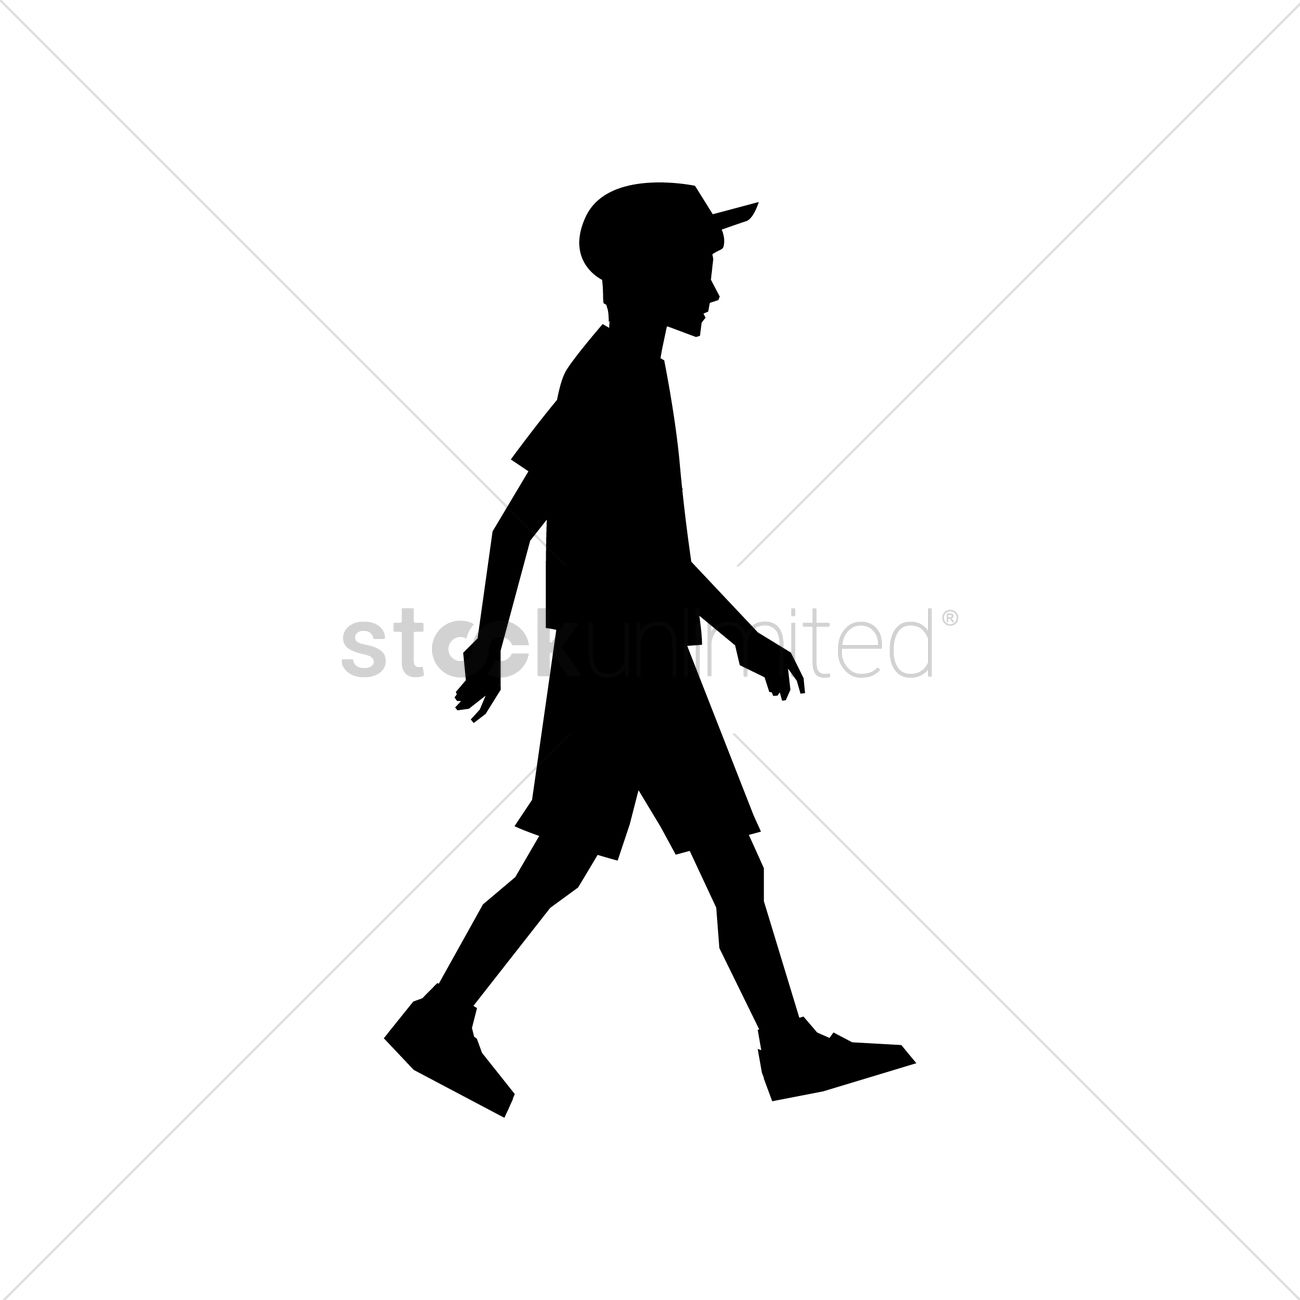 Boy Silhouette Design Vector Image 2017370 Stockunlimited Silhouette of an indian boy taken near krs dam in karnataka india. boy silhouette design vector image